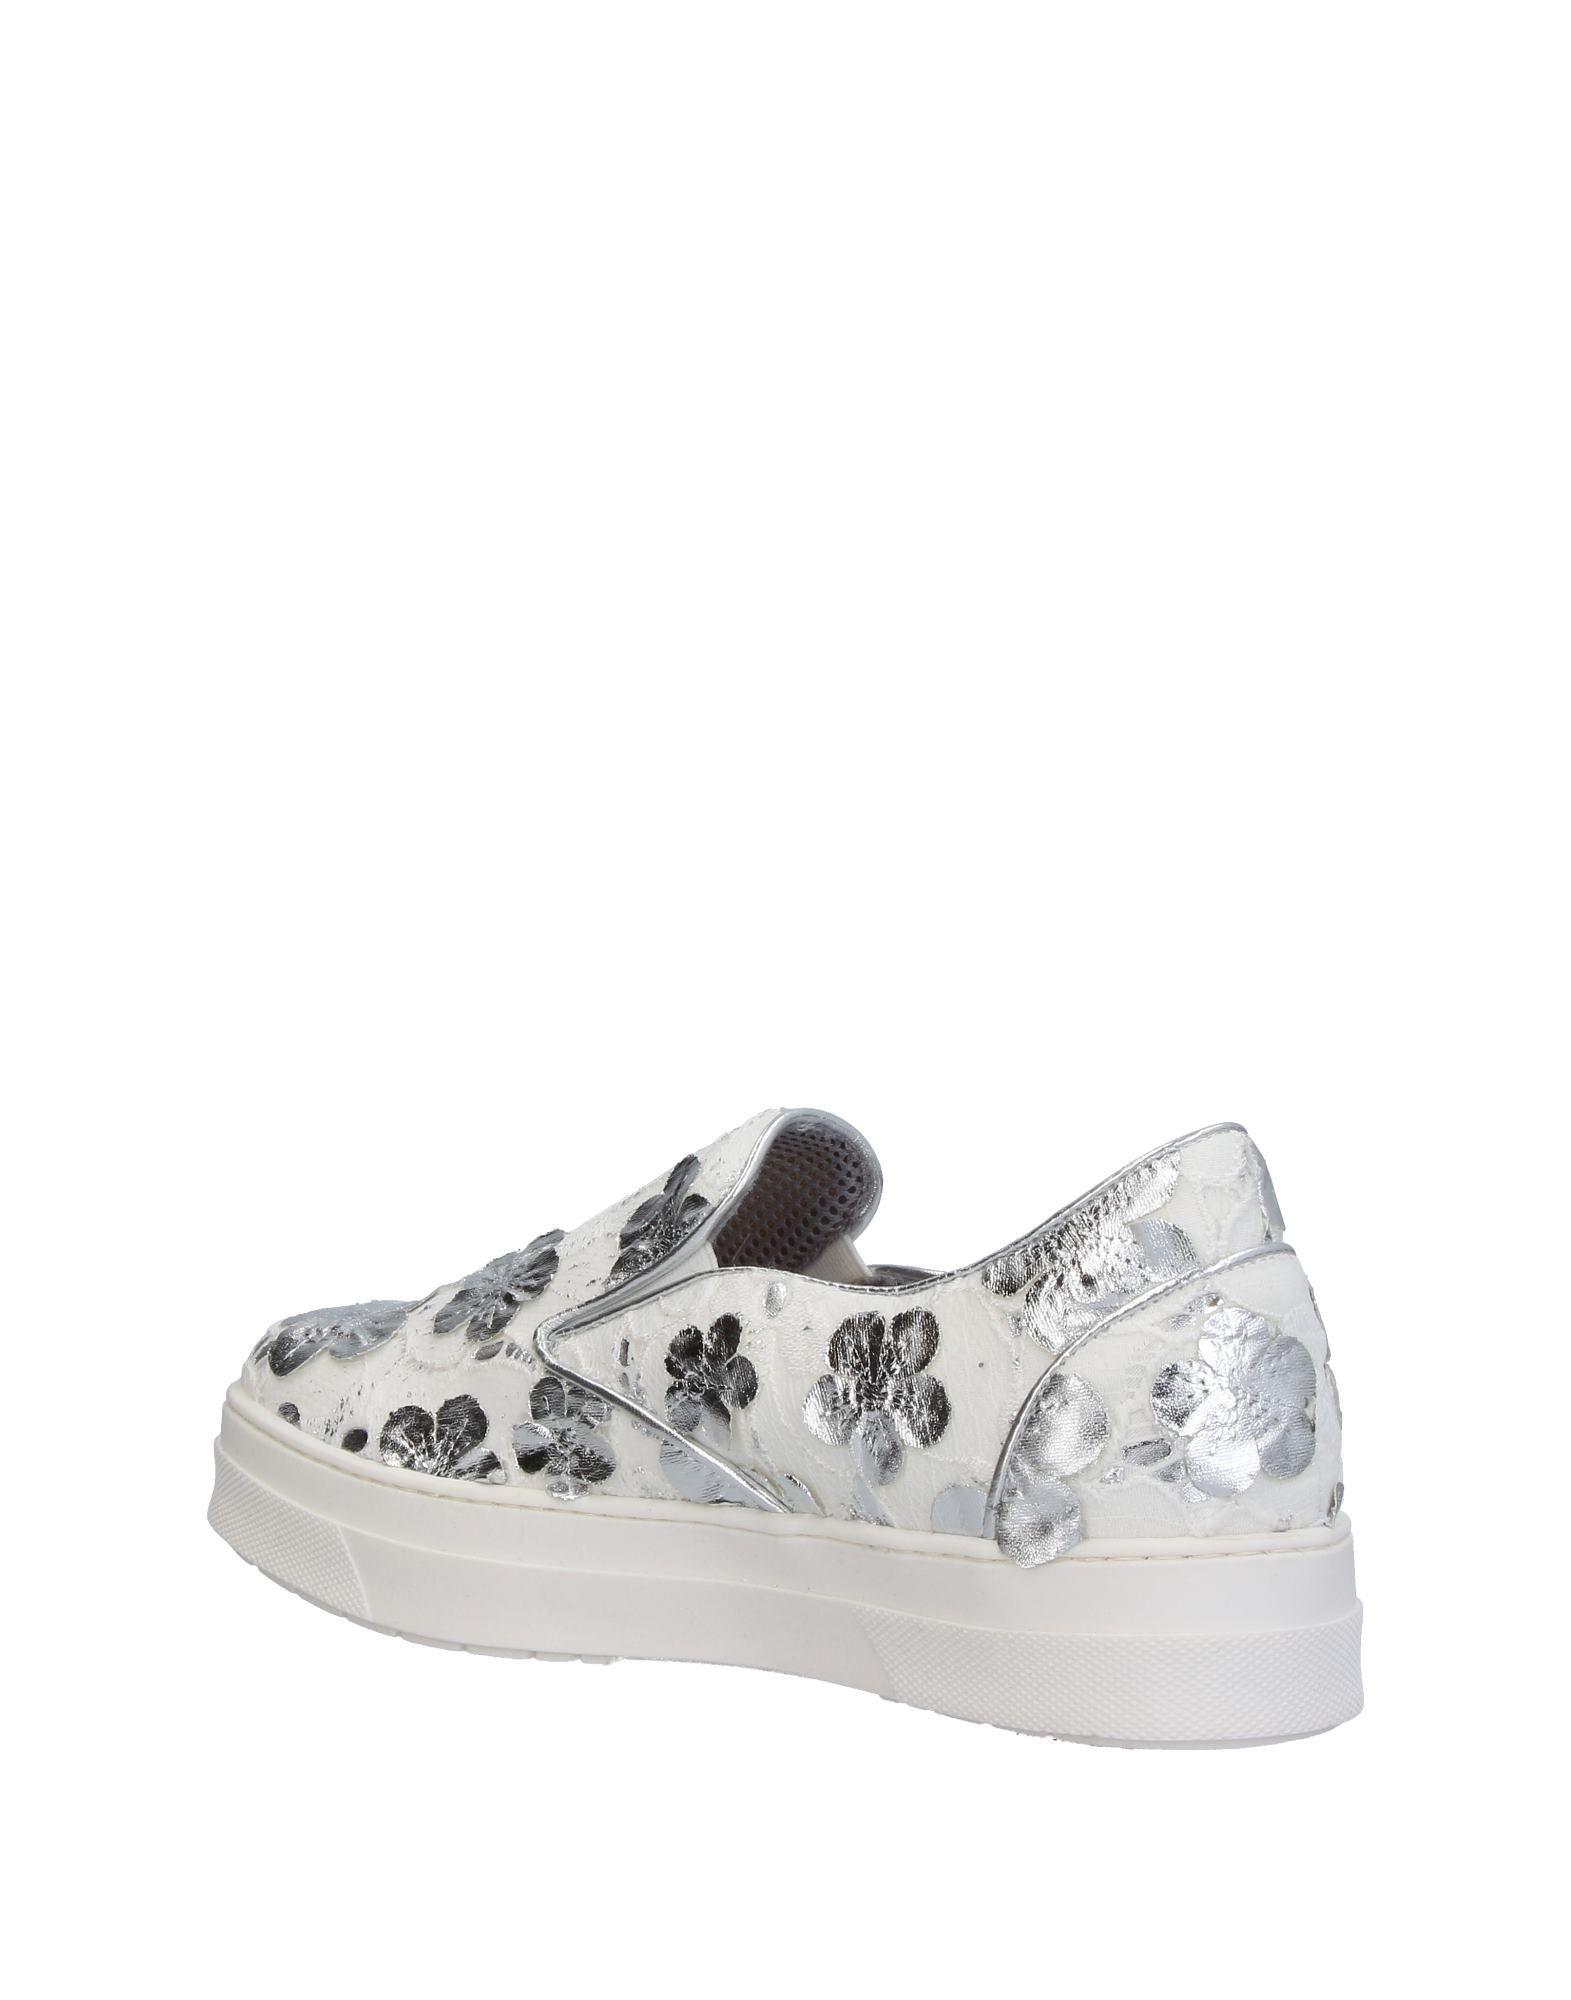 Sgn Giancarlo Paoli Lace Low-tops & Sneakers in Silver (Metallic)